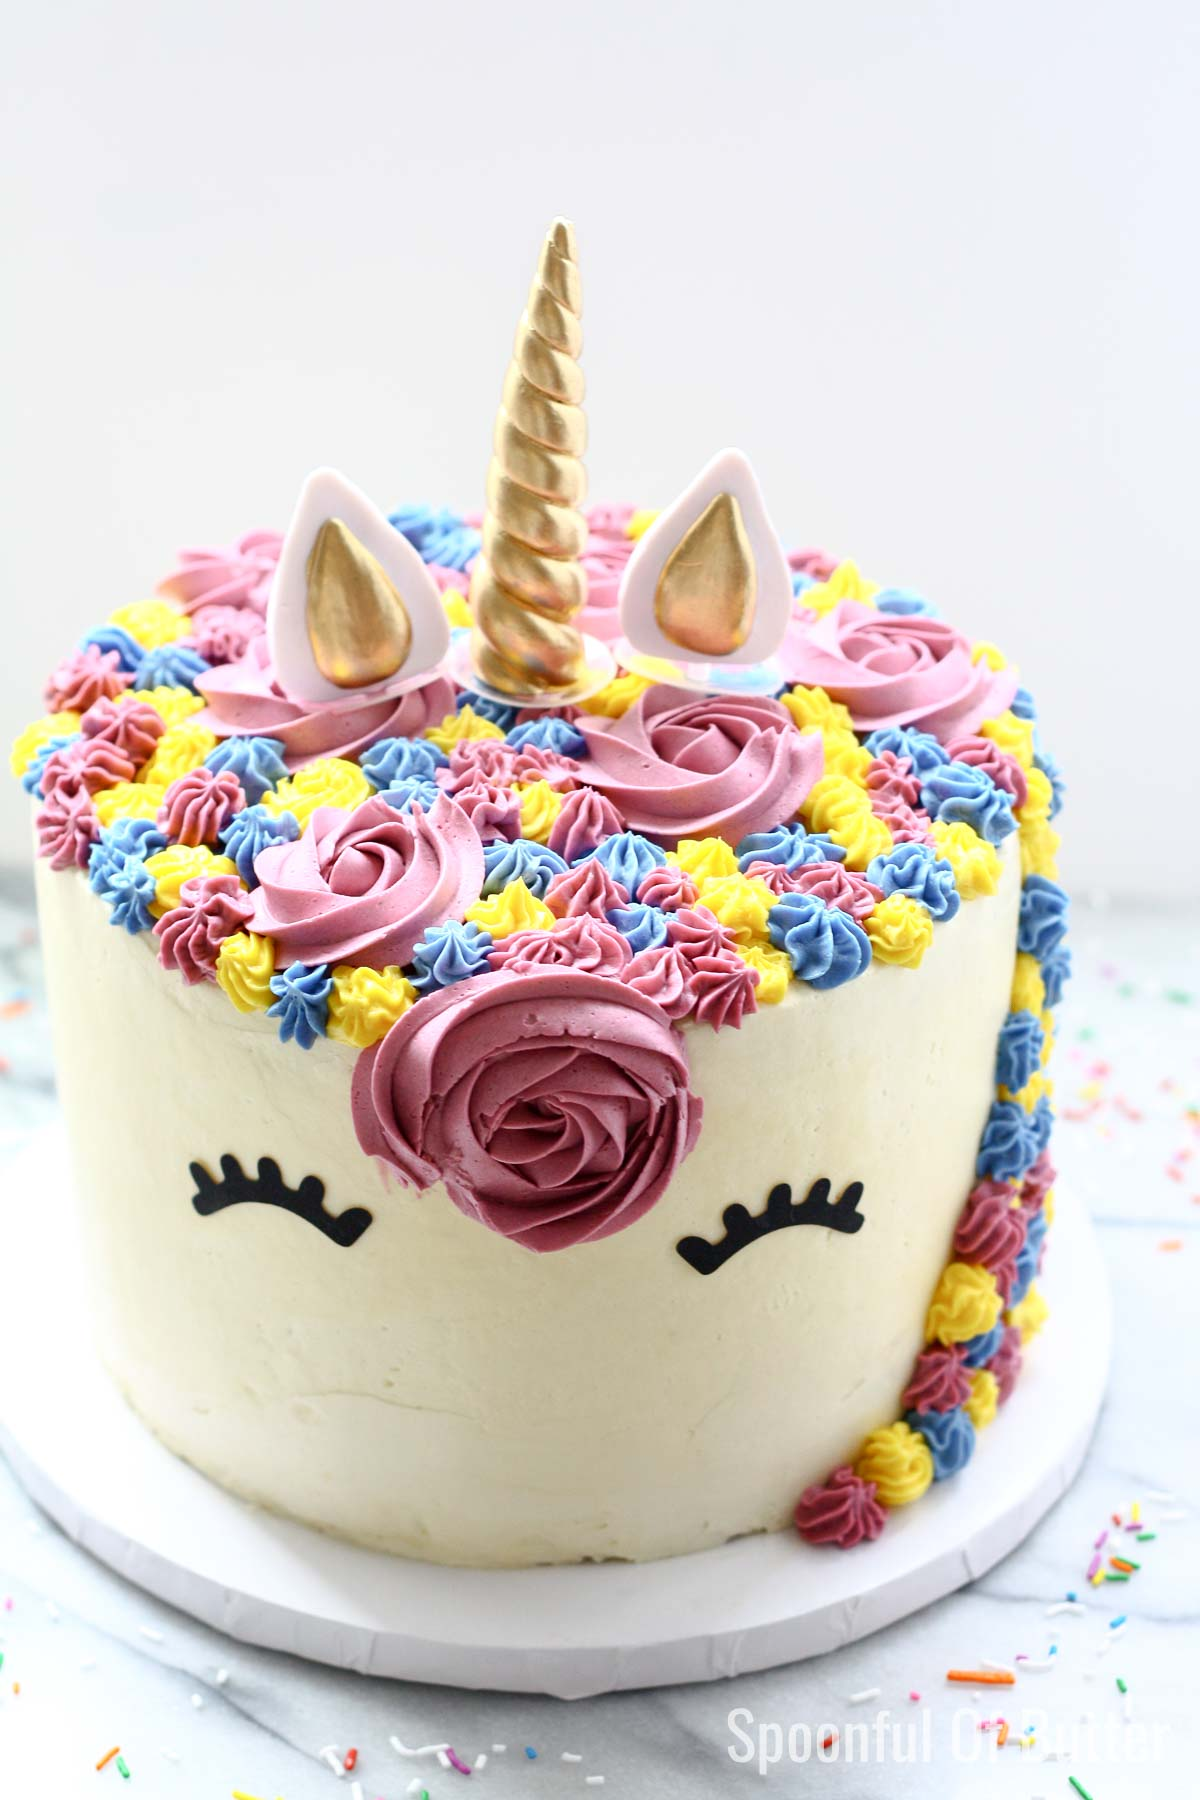 Unicorn party ideas, unicorn cake